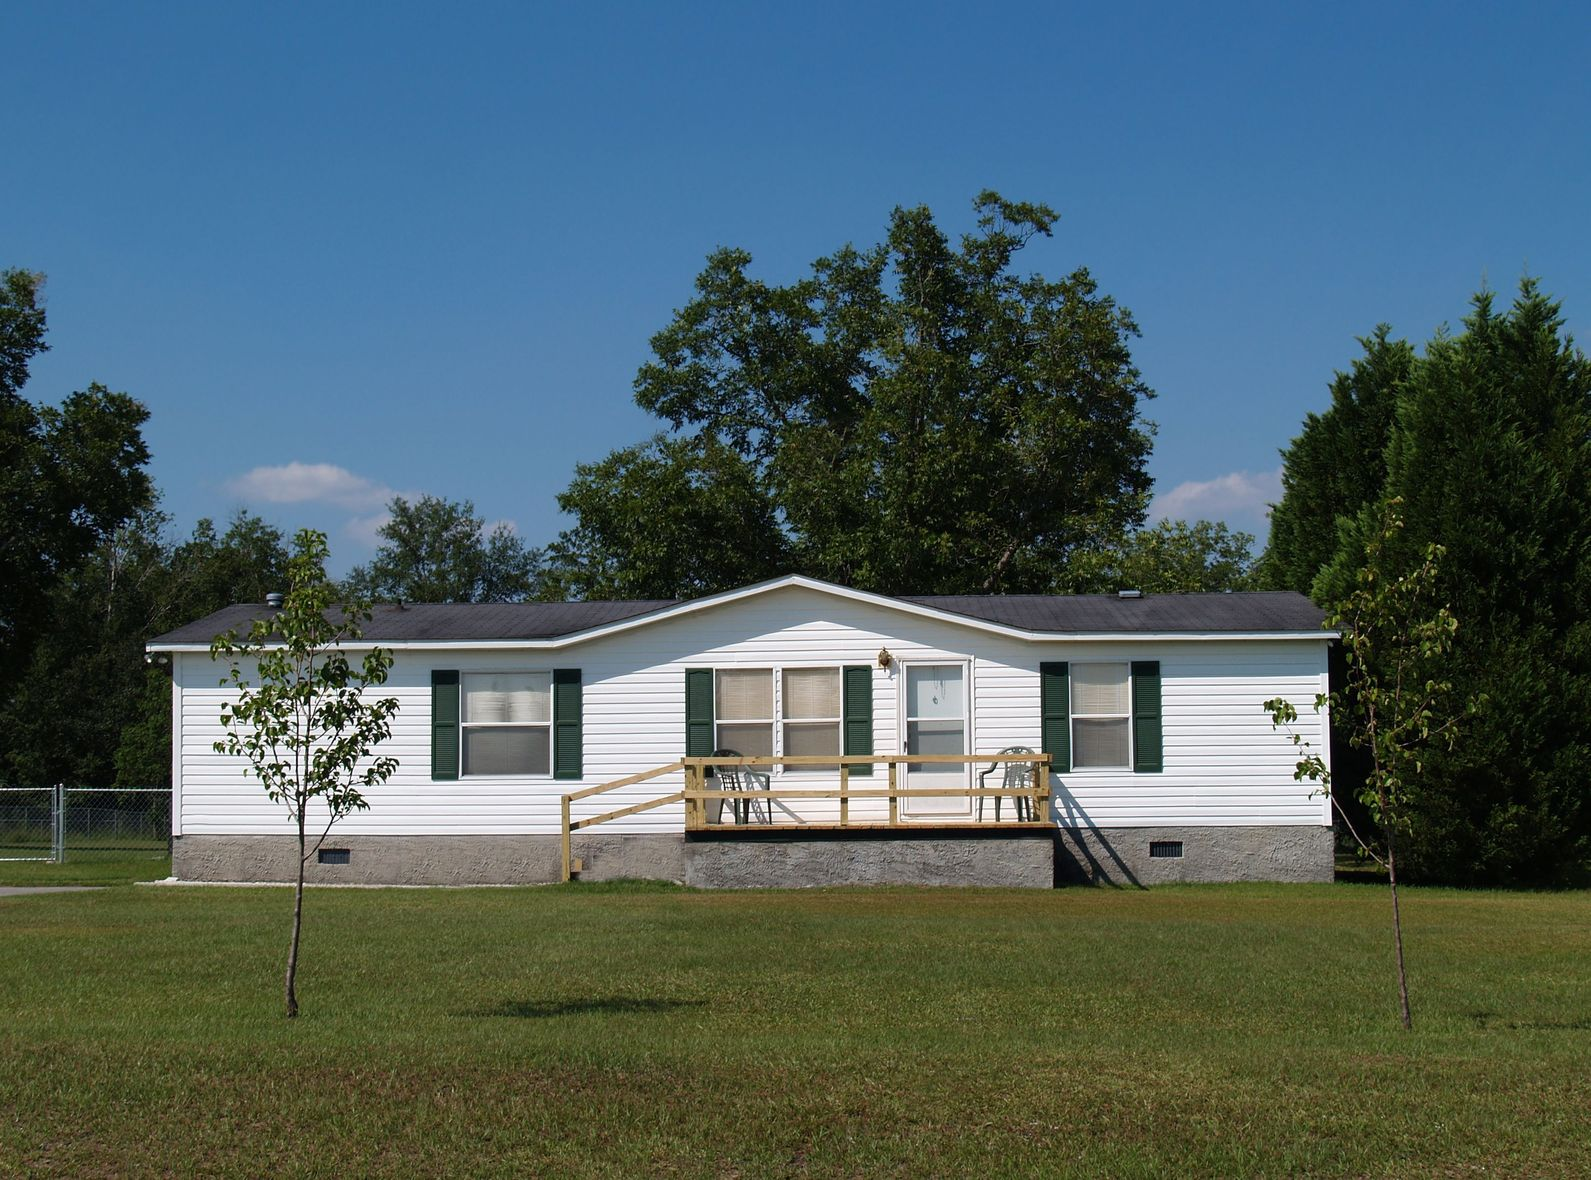 Our agency has been serving the community for more than 40 years.  Mobile Home Insurance